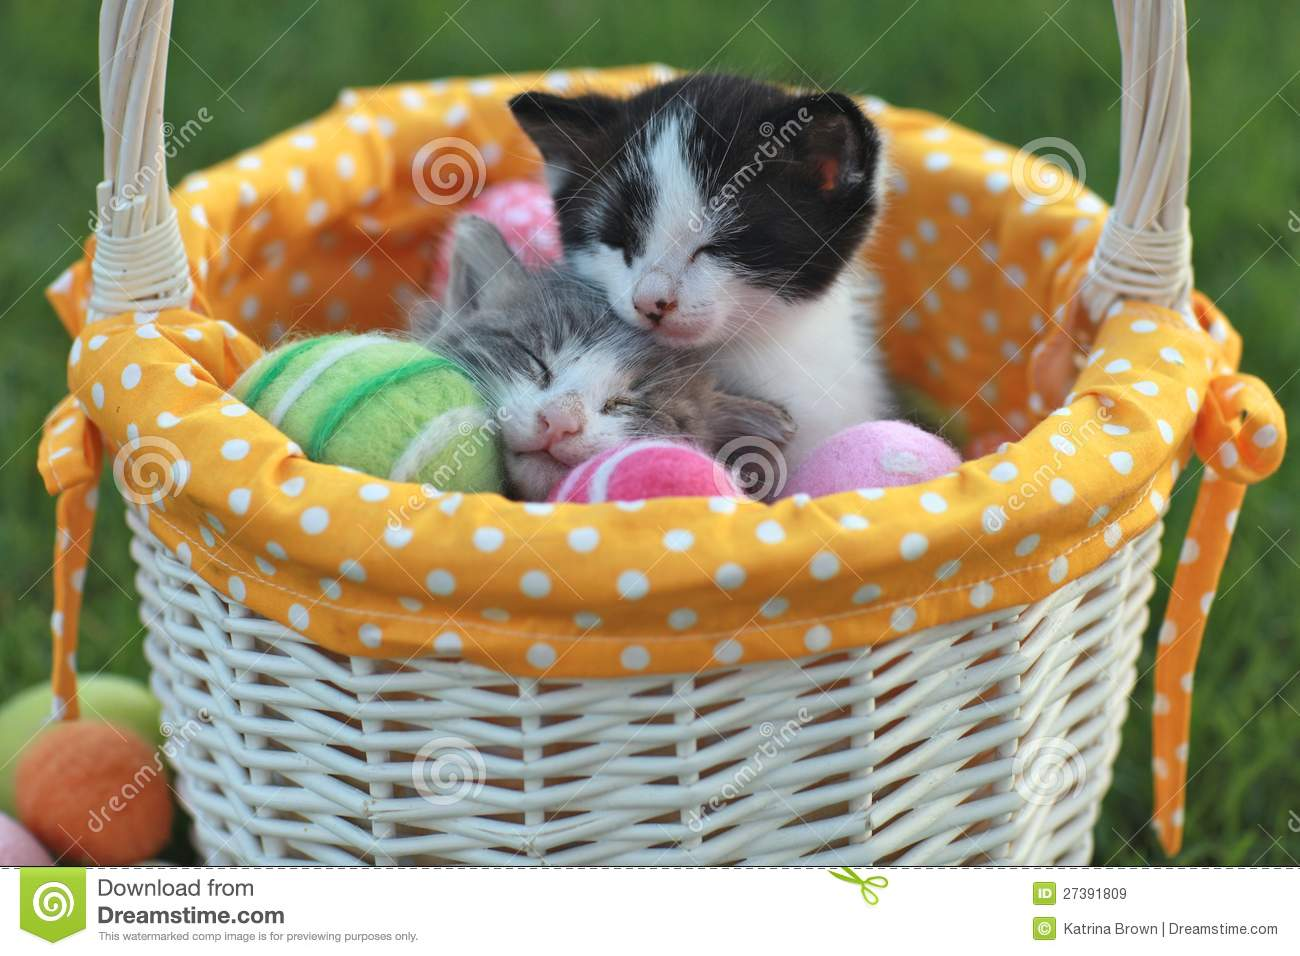 ... In A Holiday Easter Basket Royalty Free Stock Images - Image: 27391809